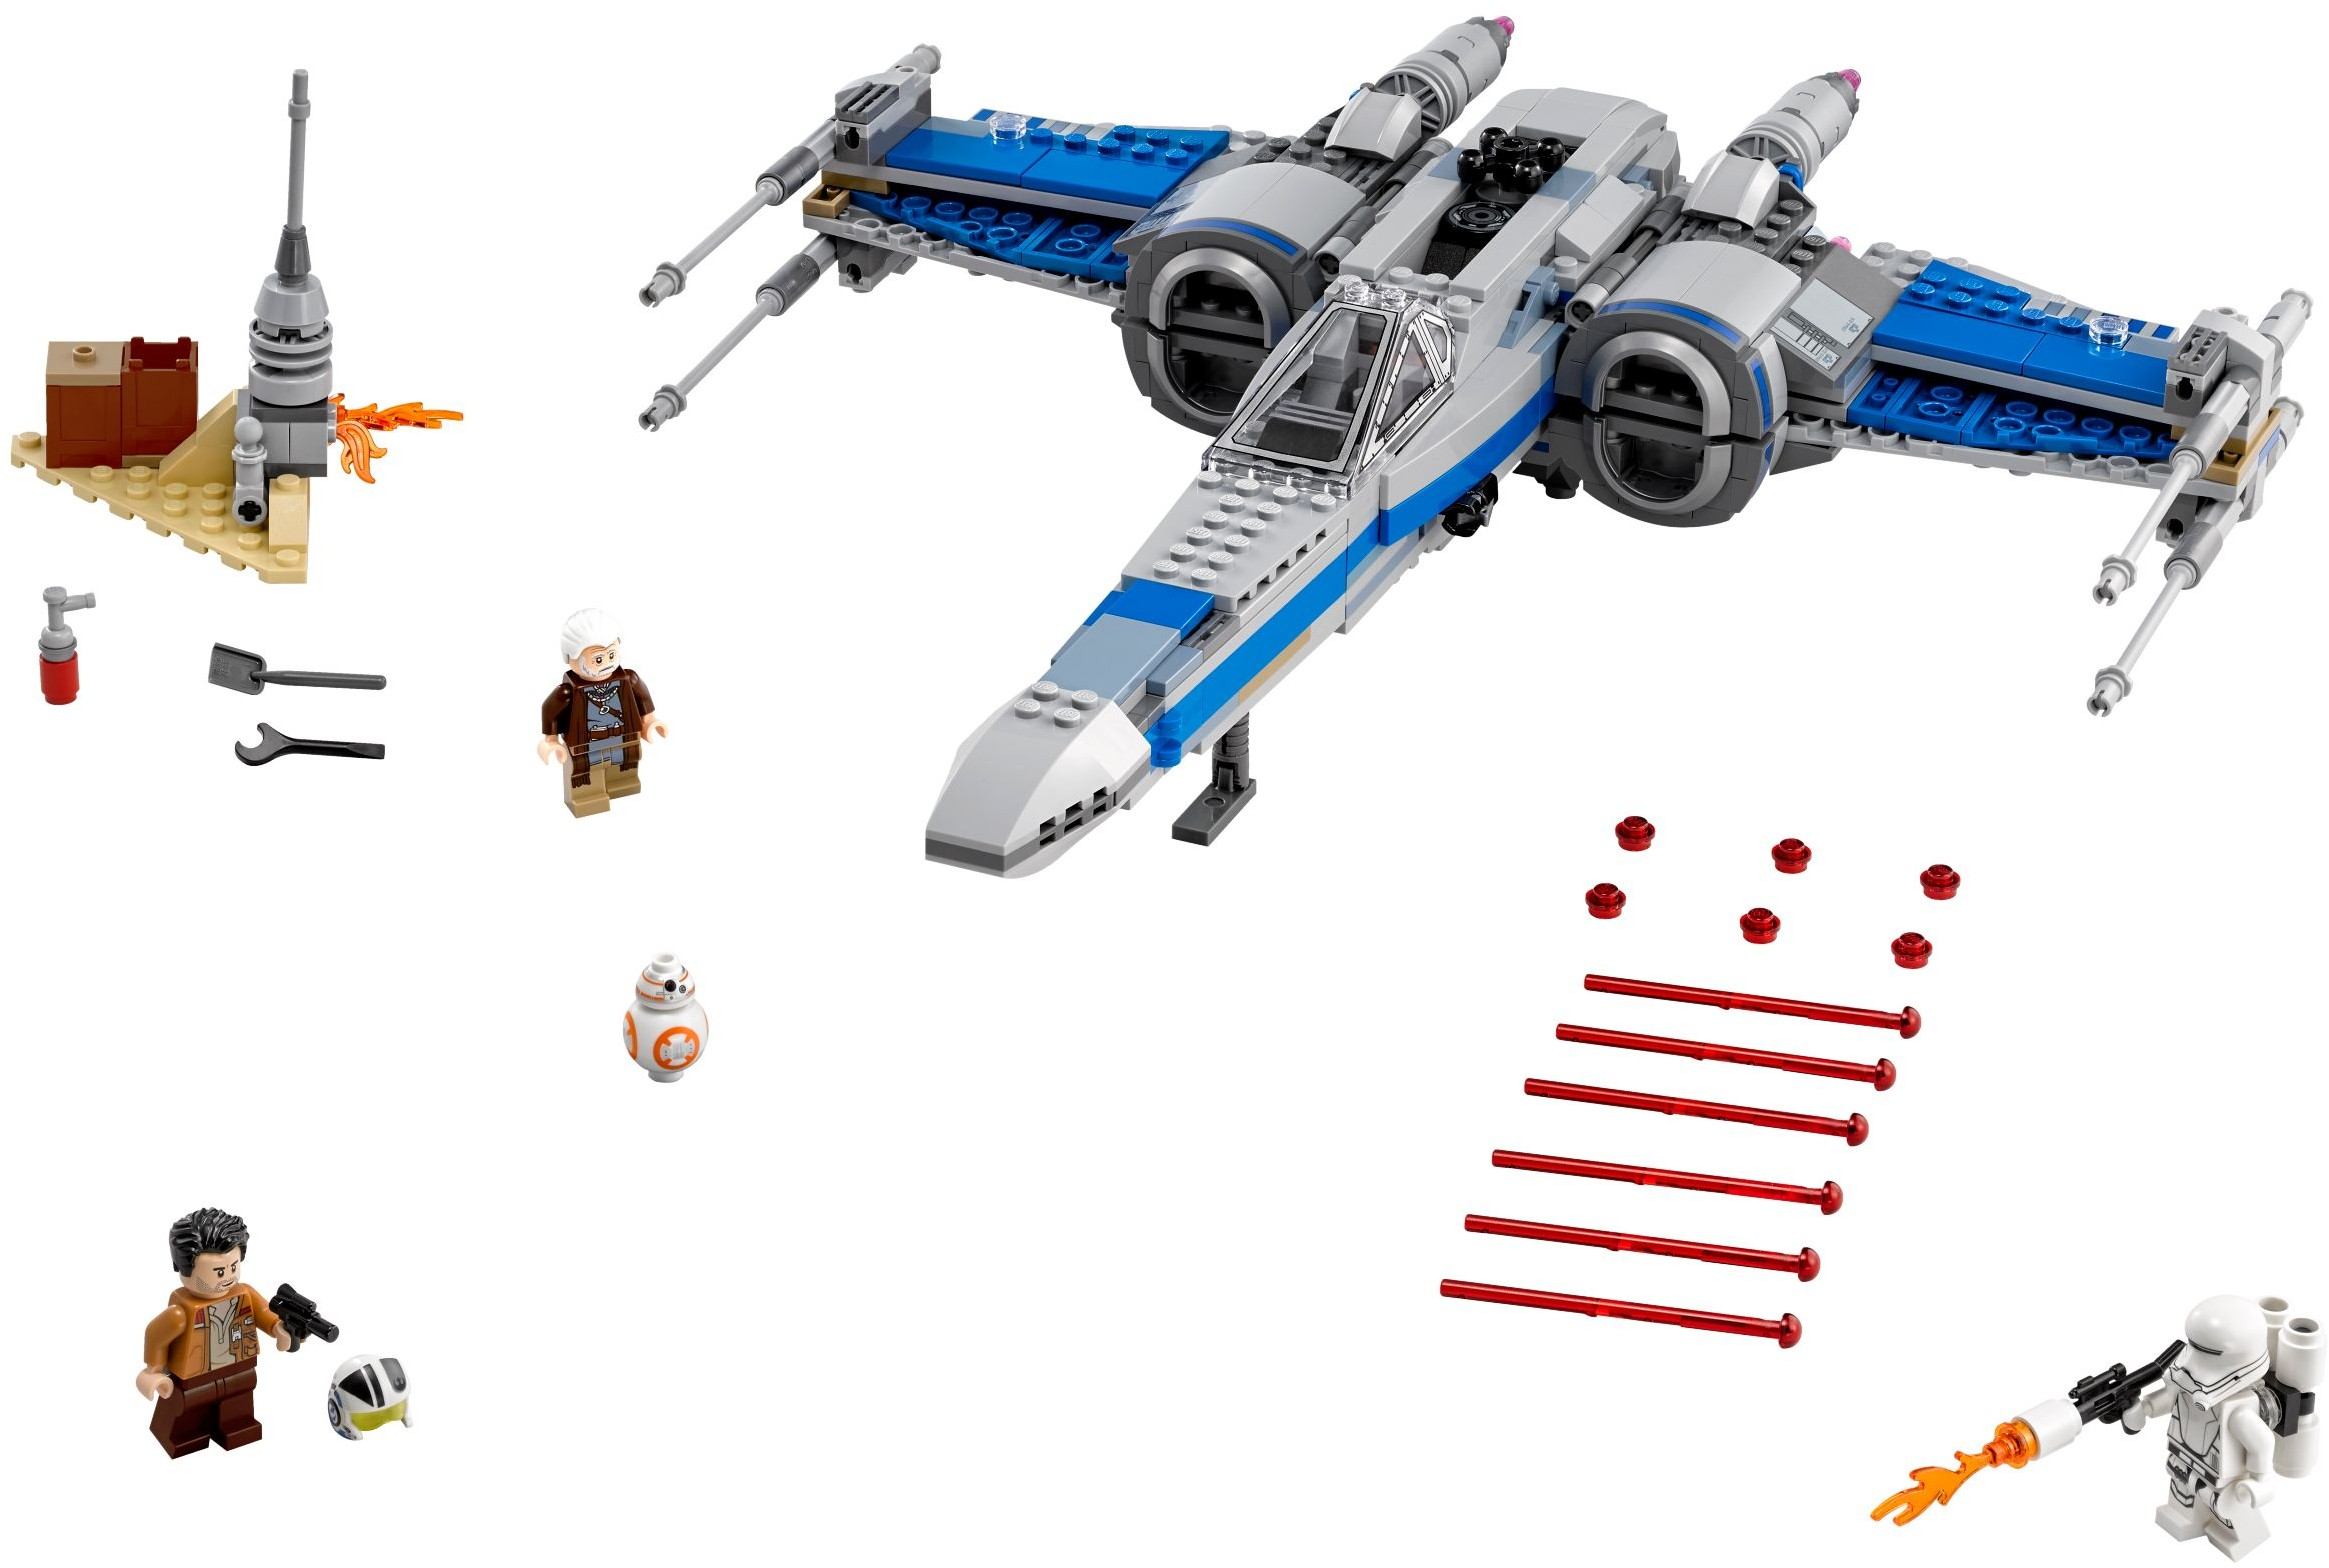 http://images.brickset.com/sets/large/75149-1.jpg?201604090635